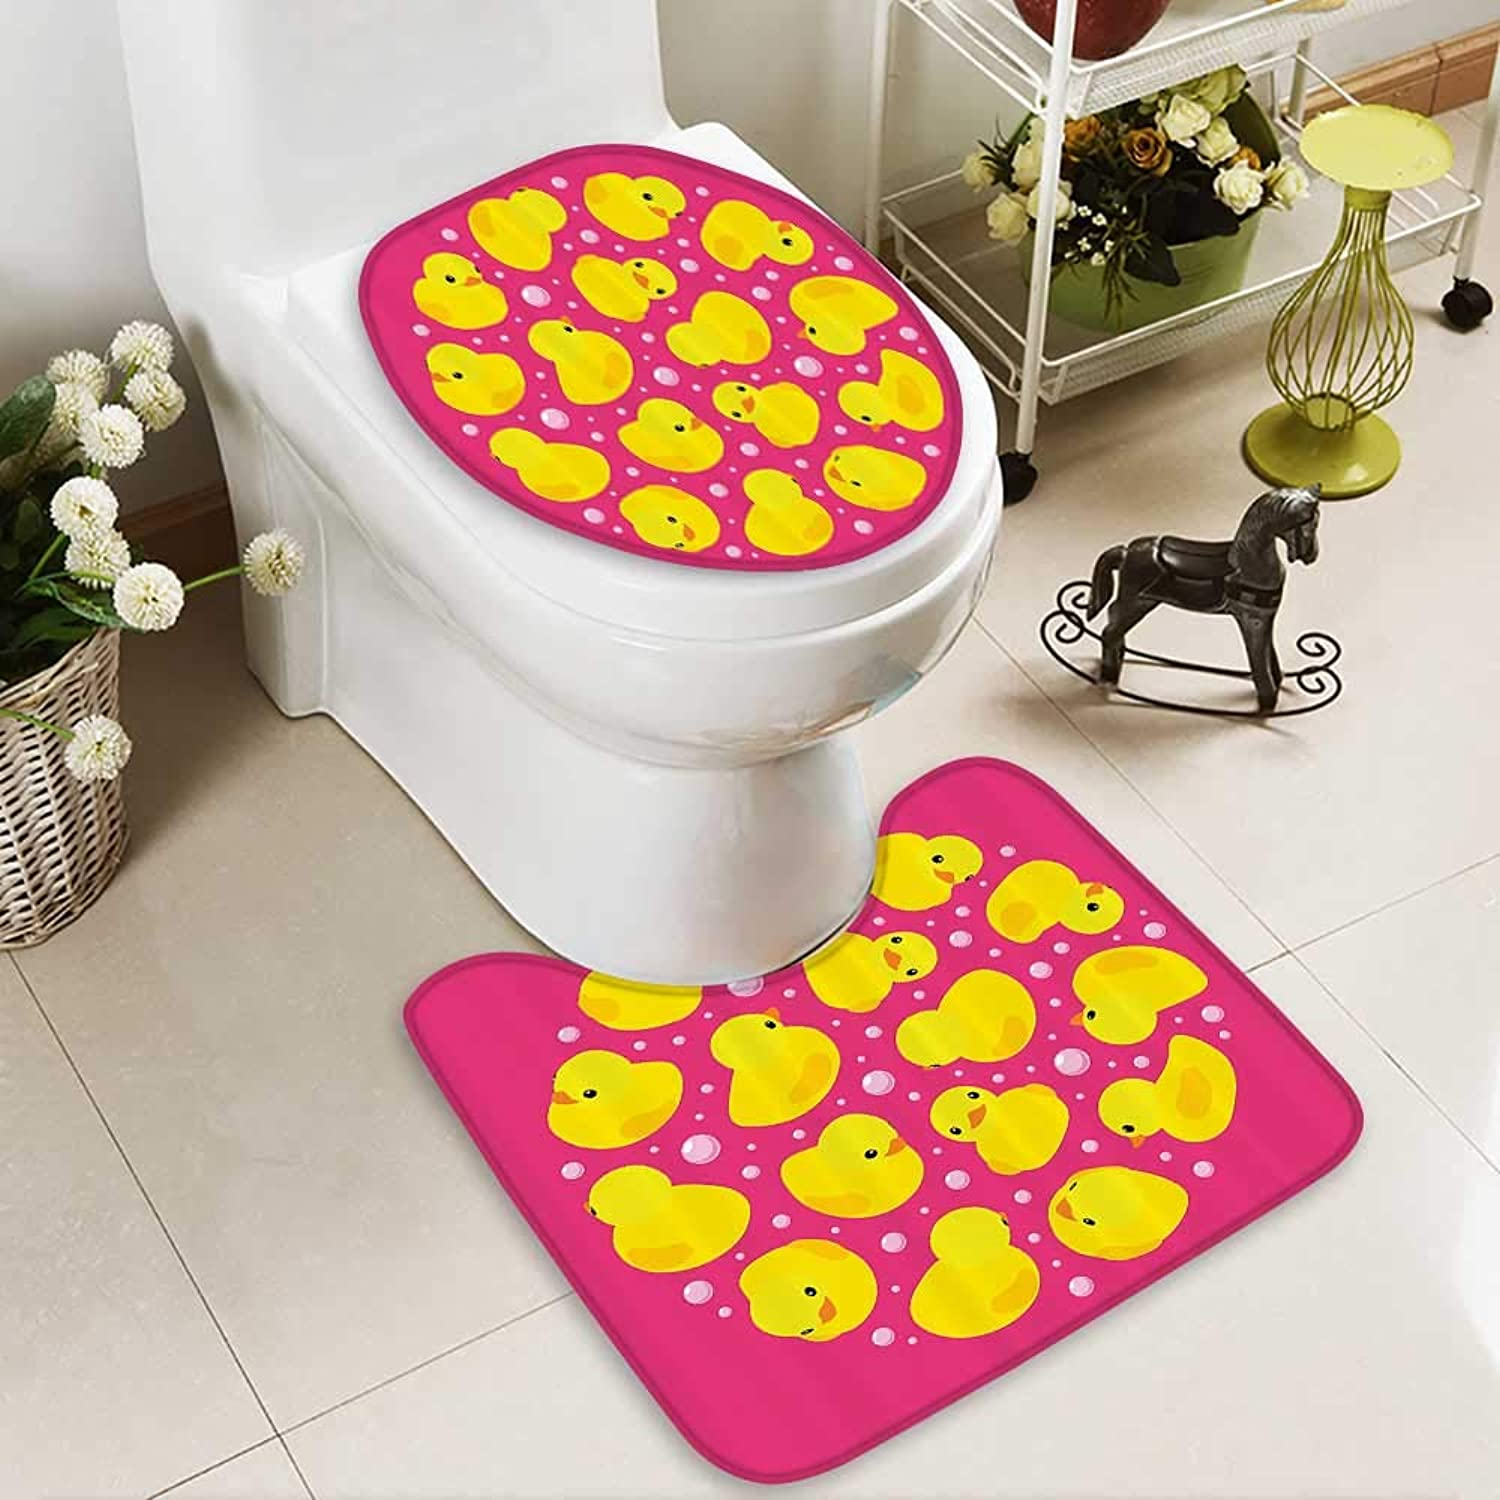 Muyindo U-Shaped Toilet Mat-Soft Fun Baby Duckies Circle ArtsyKids Toys Bubbles Hot Pink Animal 2 Piece Toilet Toilet mat